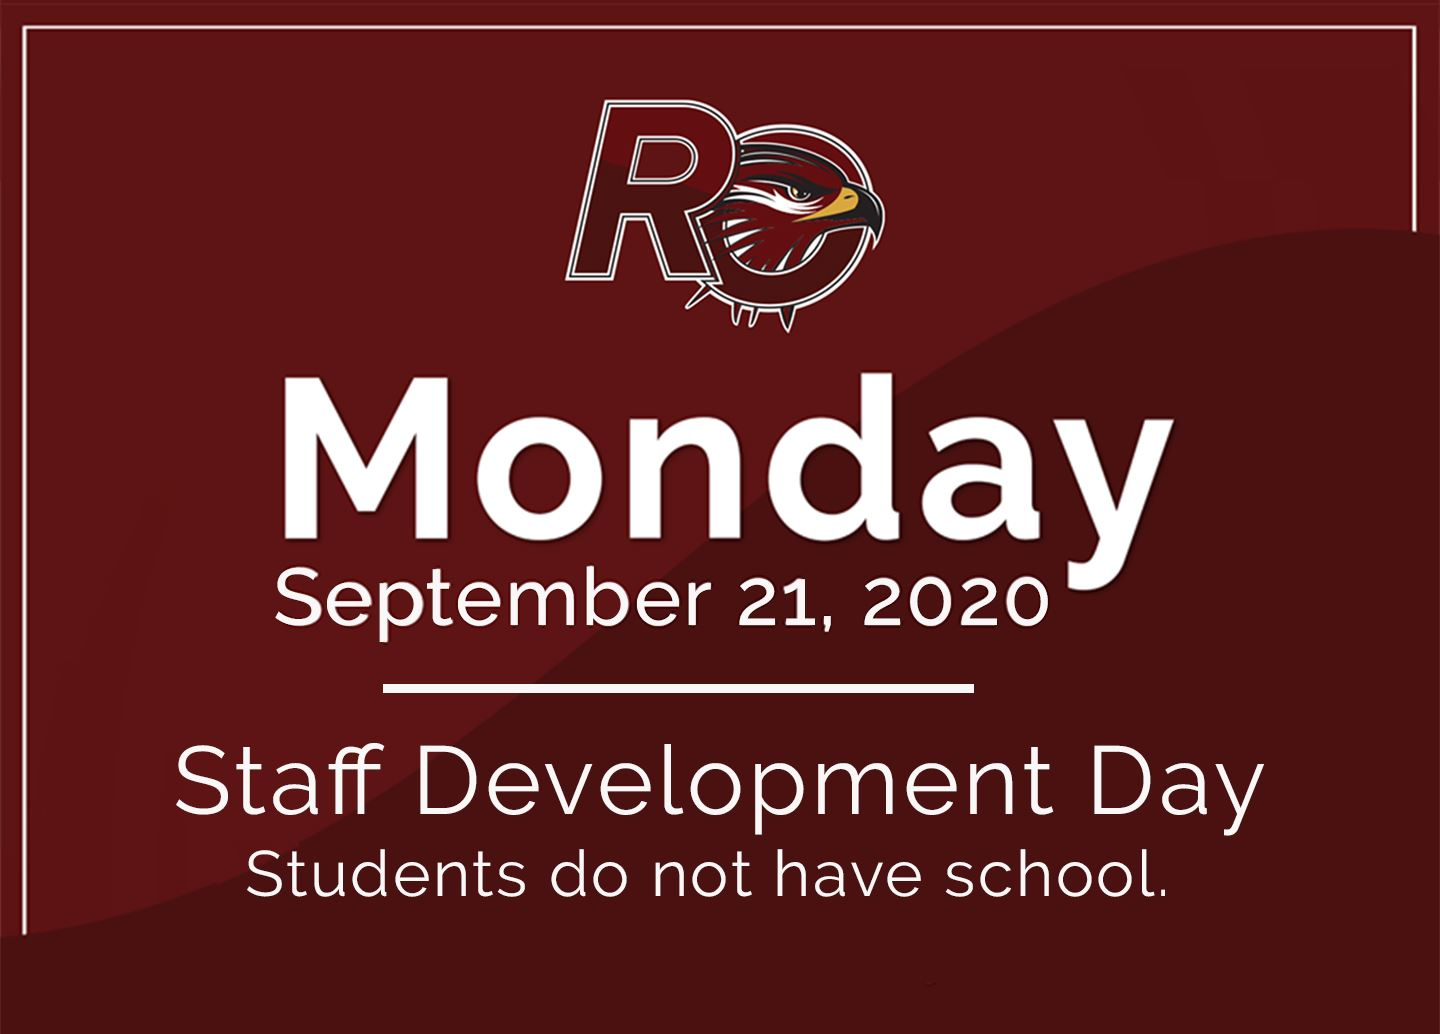 Staff Development & Student Holiday on Monday, September 21